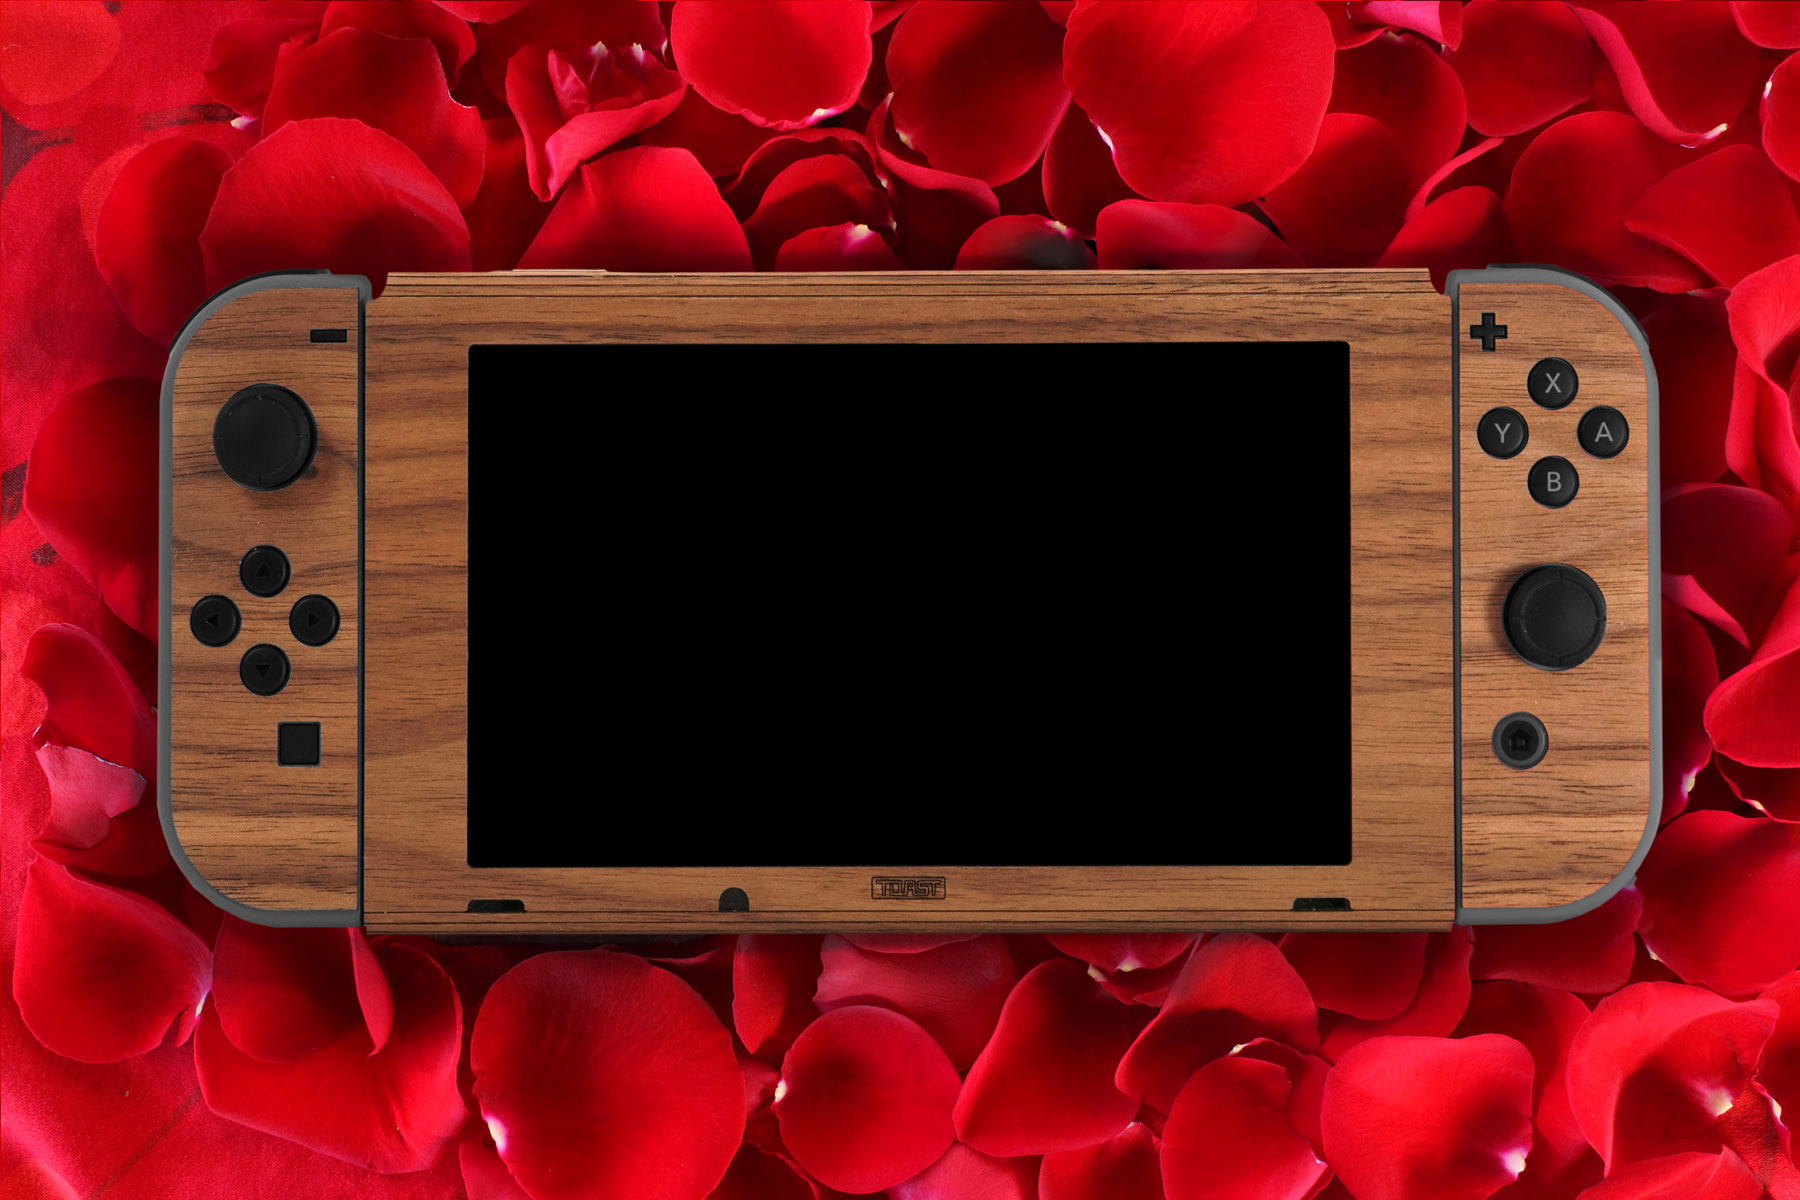 Five Great Gaming Hardware Gifts For Valentine